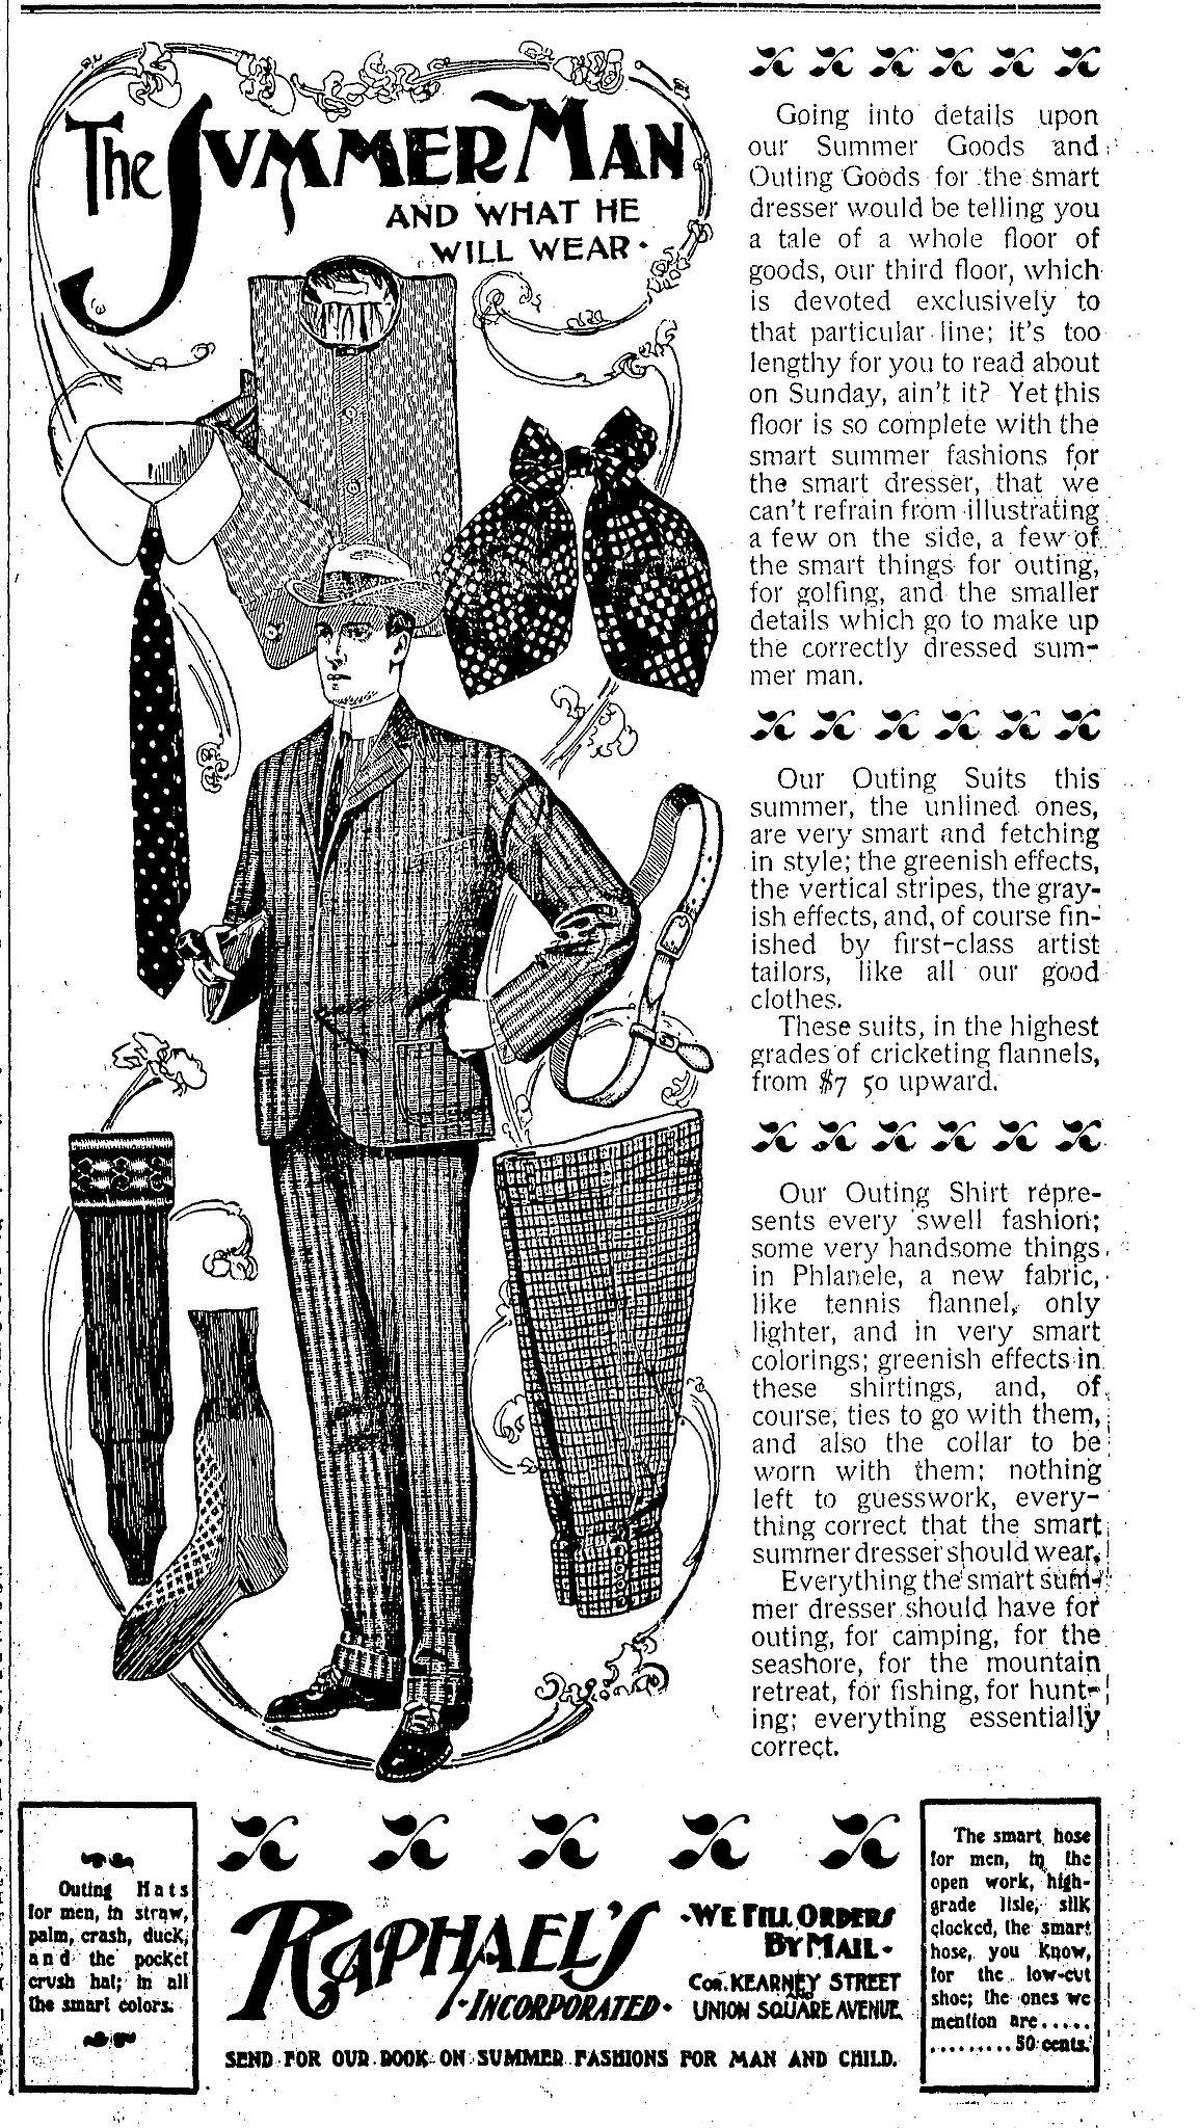 Display ads from May 26, 1901